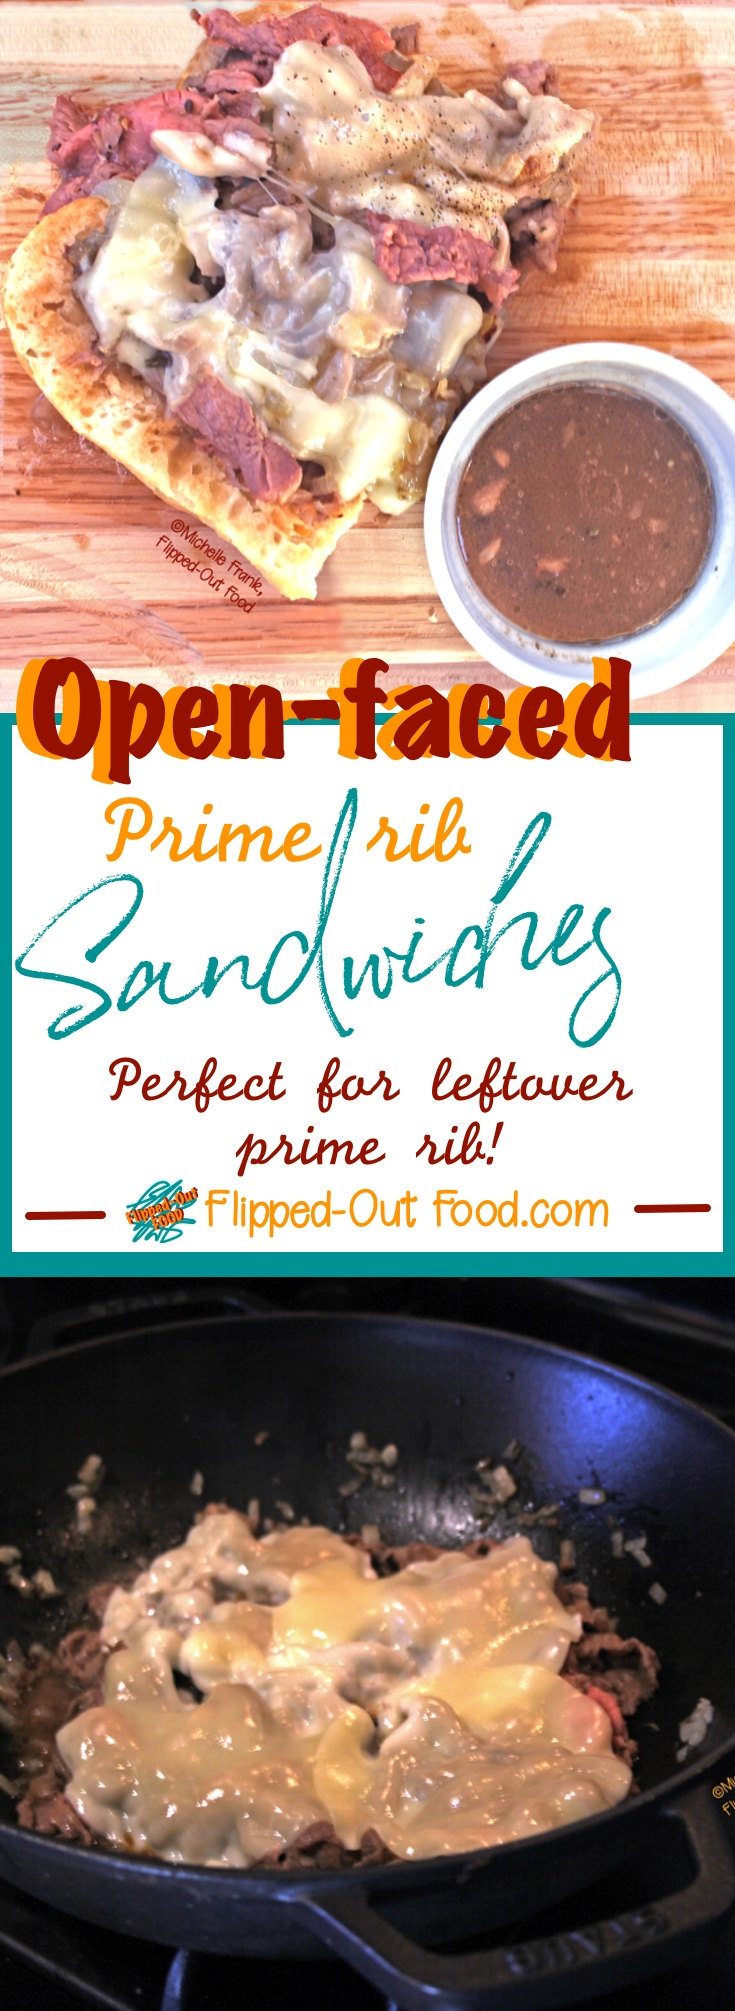 Open-Faced Prime Rib Sandwiches: the perfect way to use up leftover Prime Rib! The meat is mixed with caramelized onions, then provolone cheese melts on top. #leftovers #primeribsandwiches #pubfood